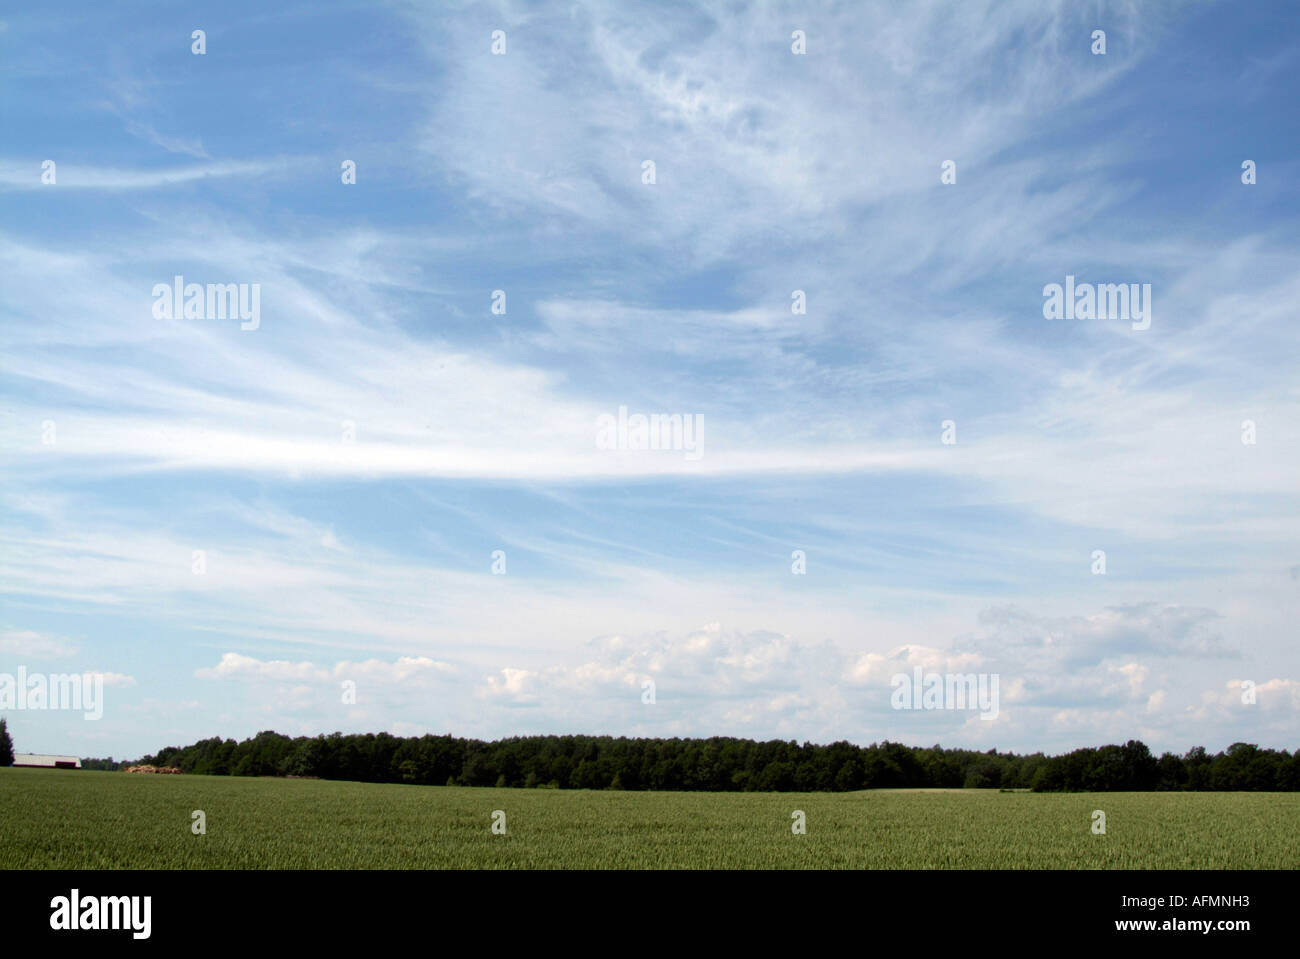 agriculture, in, Sweden, Swedish, field, sky, blue, crop, crops, farm, farming, field, sustainable, green, blue, sky, prosperous - Stock Image